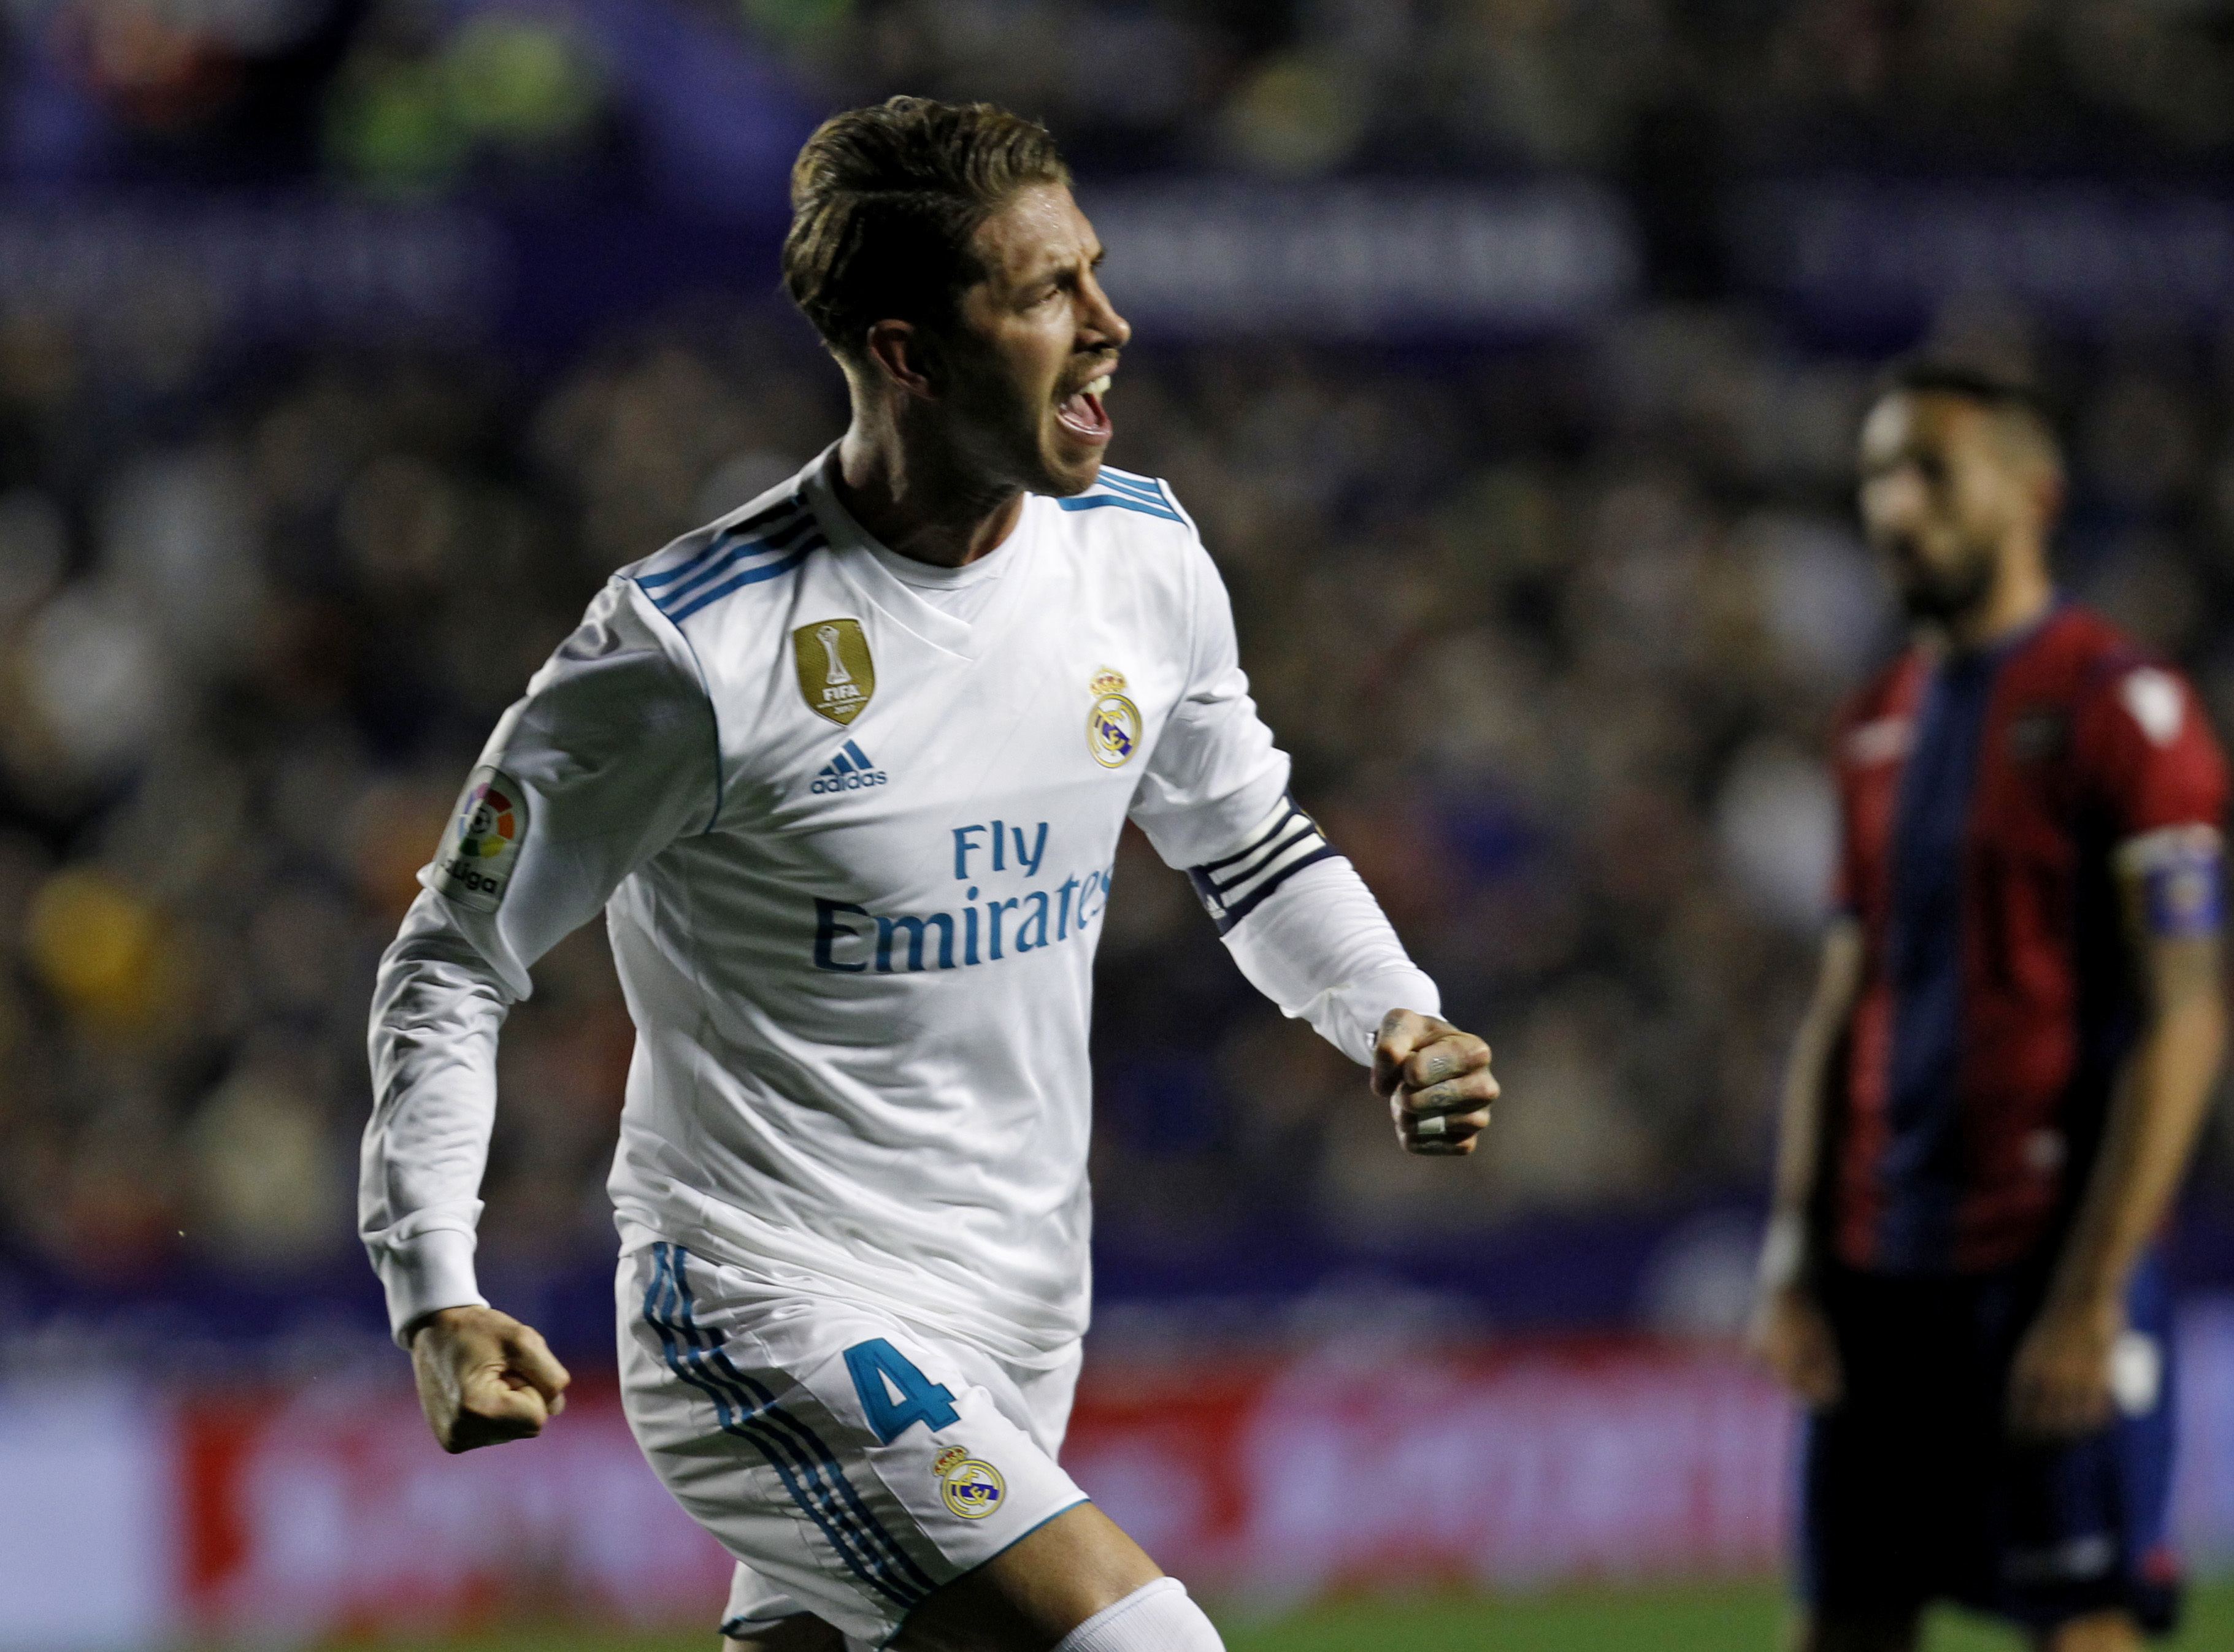 Zidane on the Brink after Real slip-up at Levante